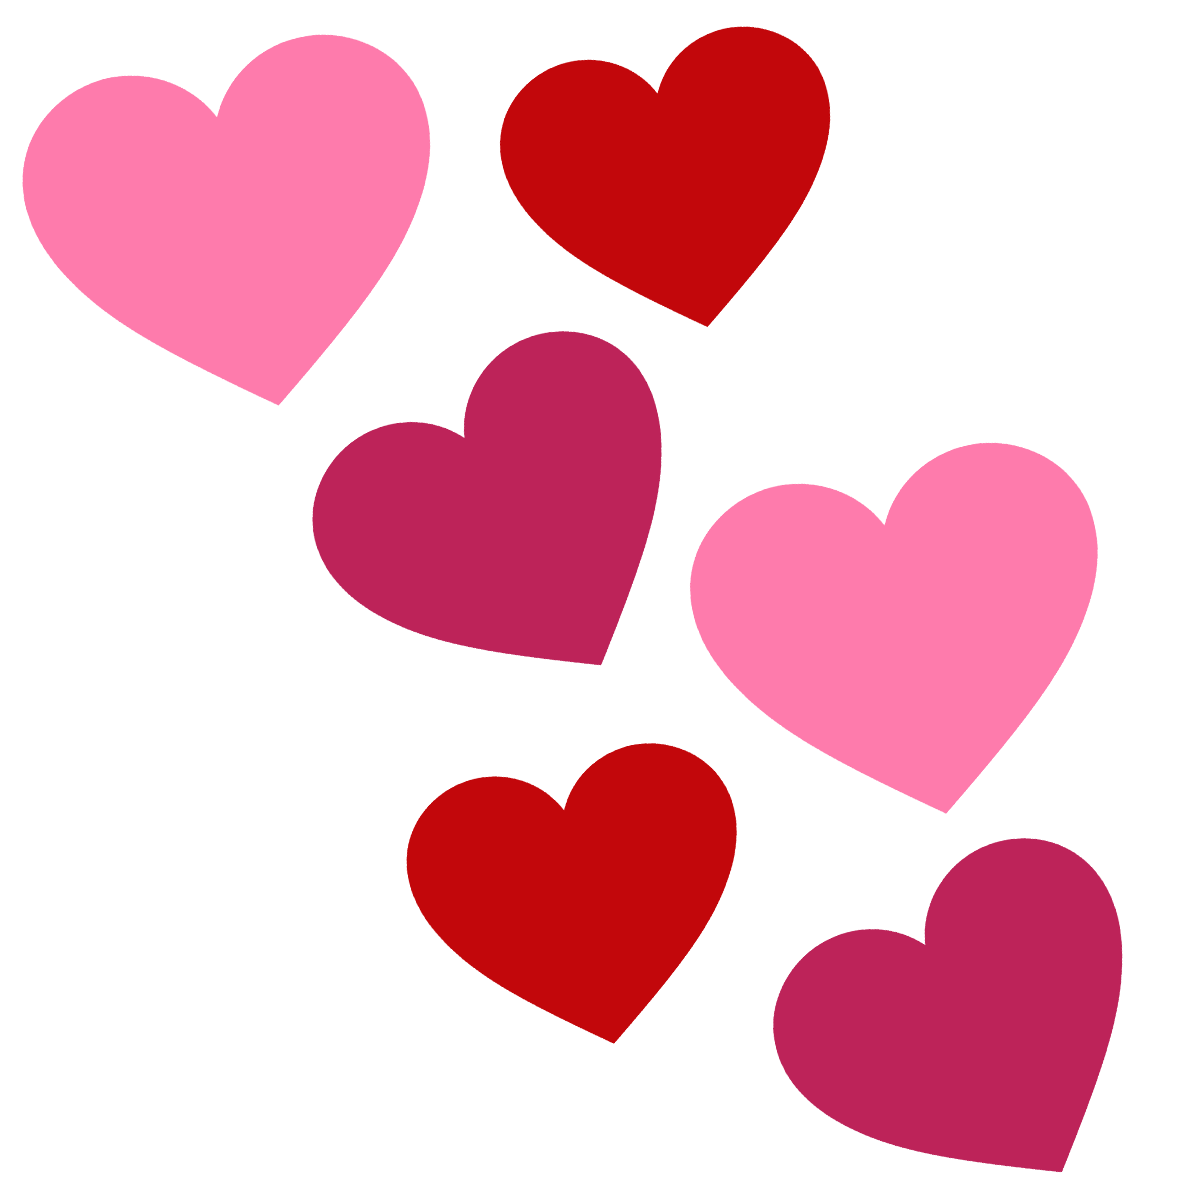 heart clipart fotolip com rich image and wallpaper rh fotolip com hearts clip art images heart clipart free